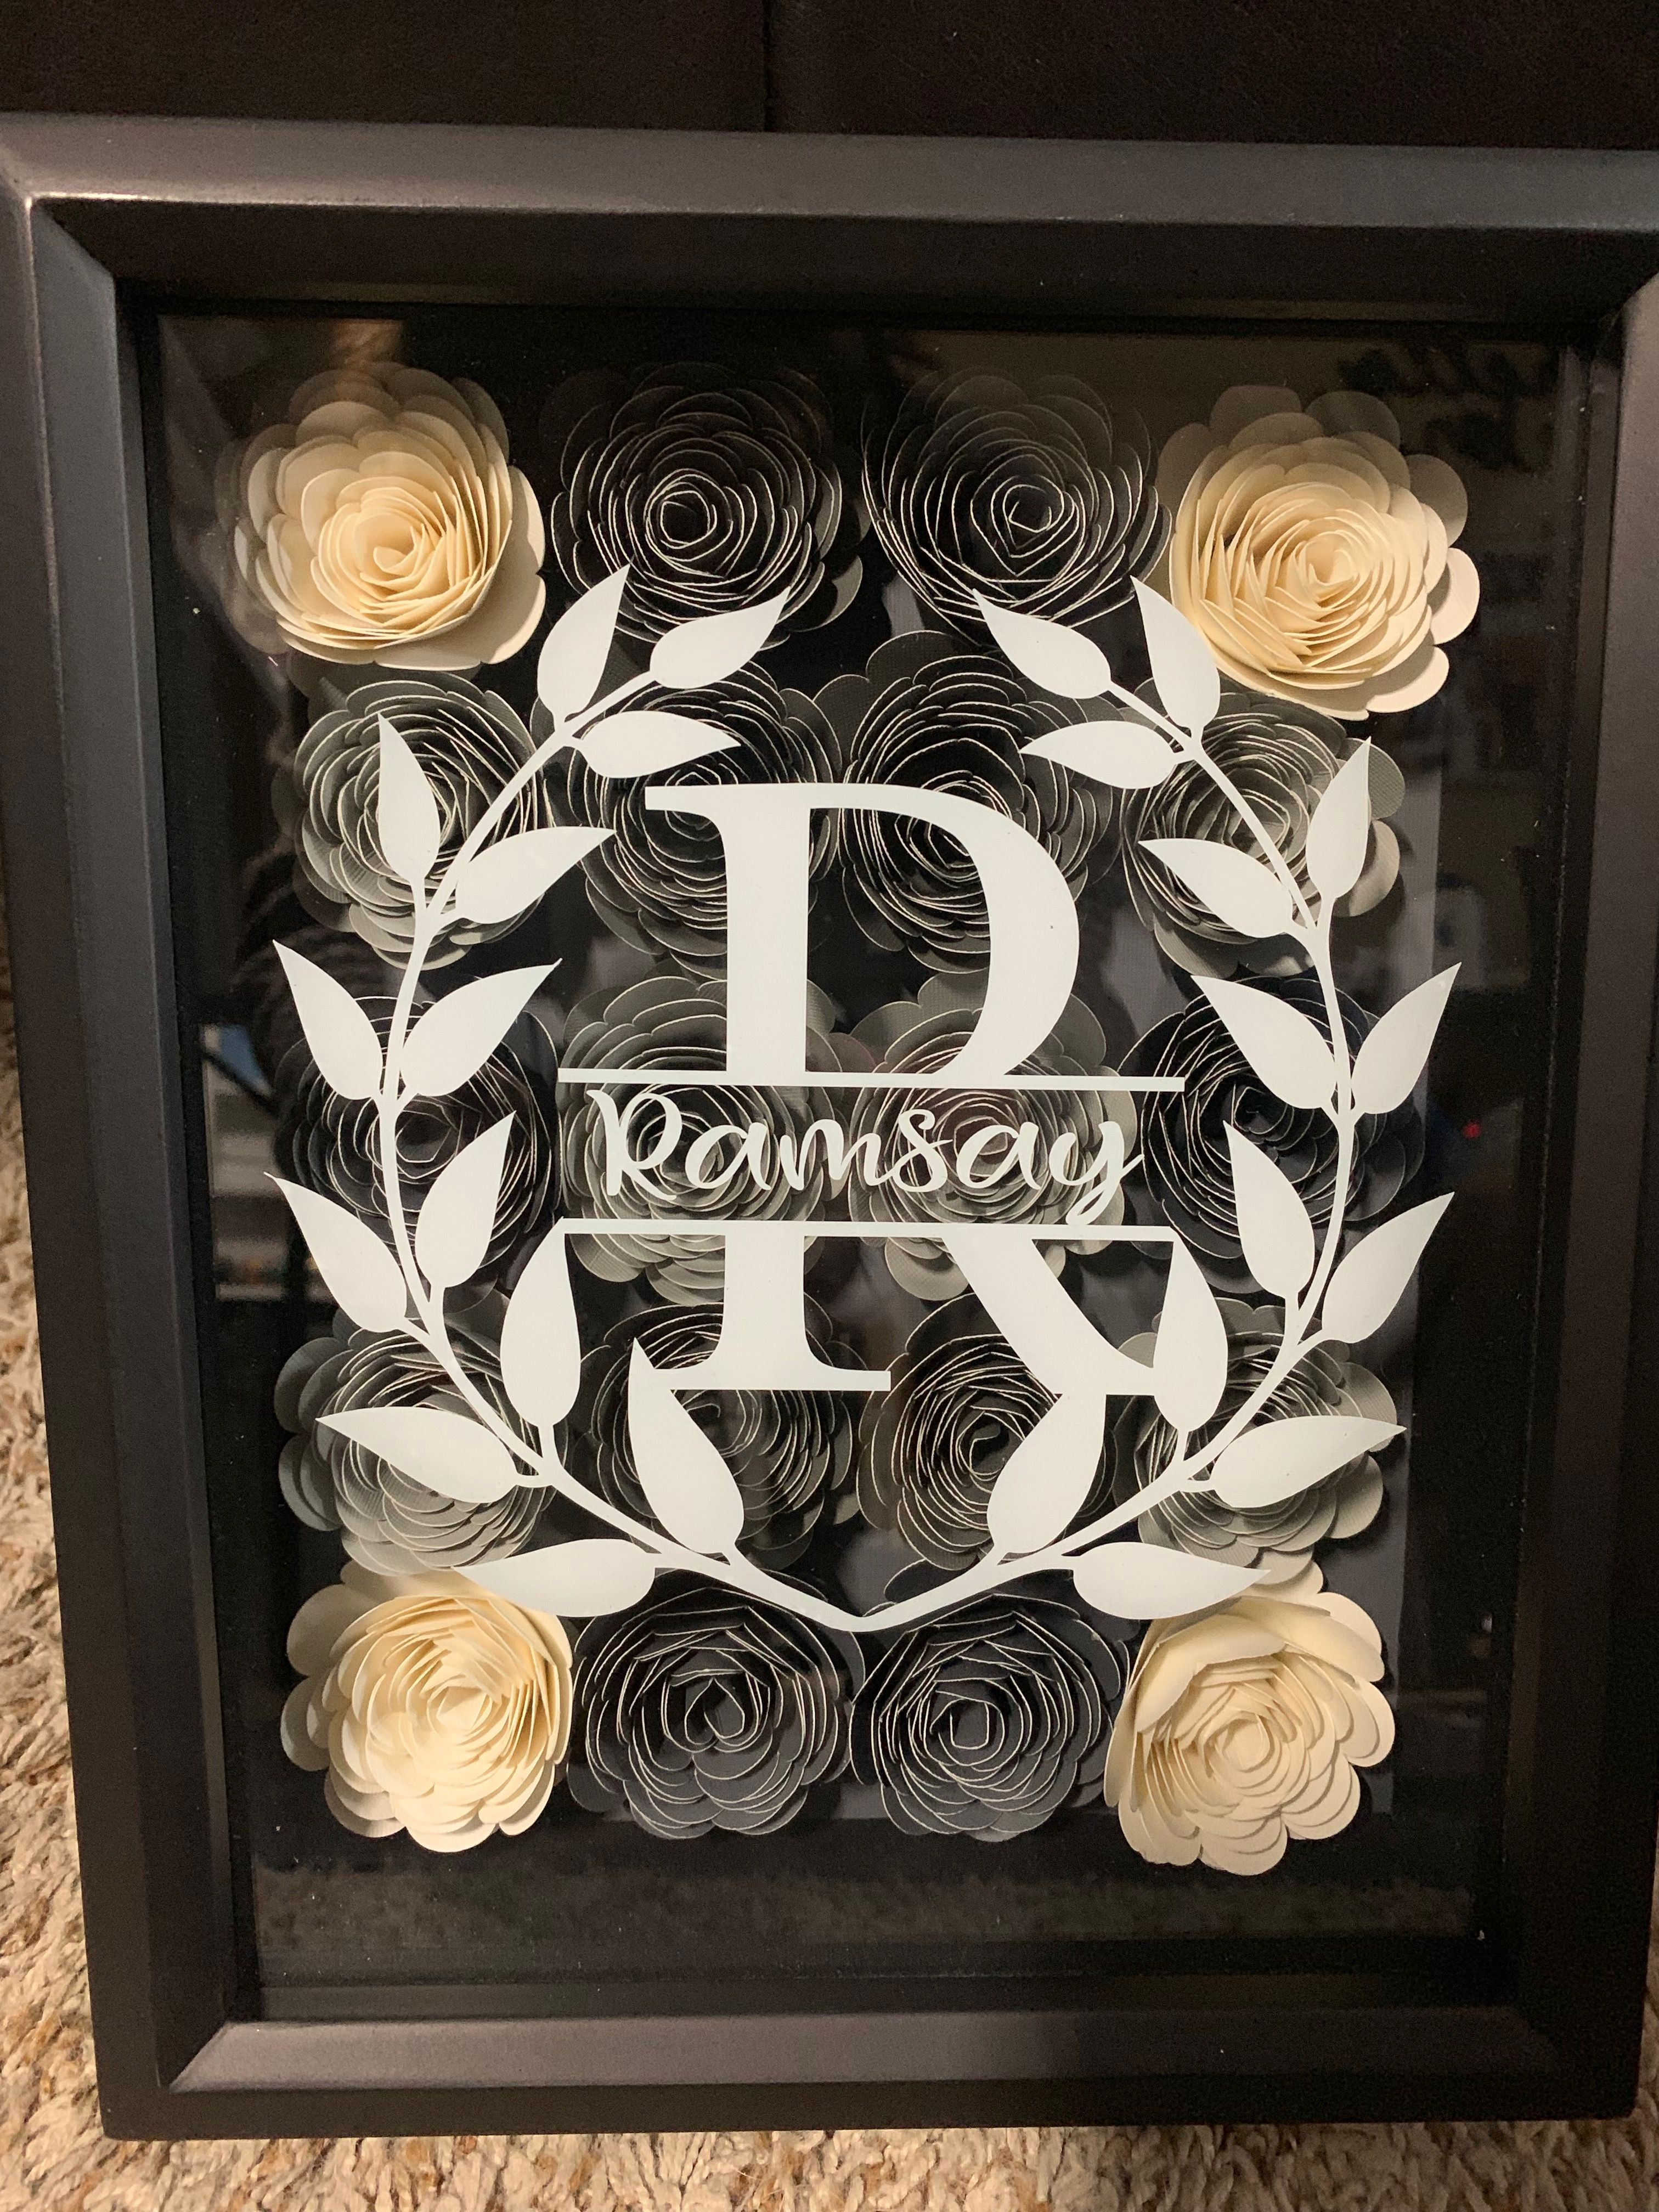 Paper Roses made from on Cricut..dr Flower shadow box